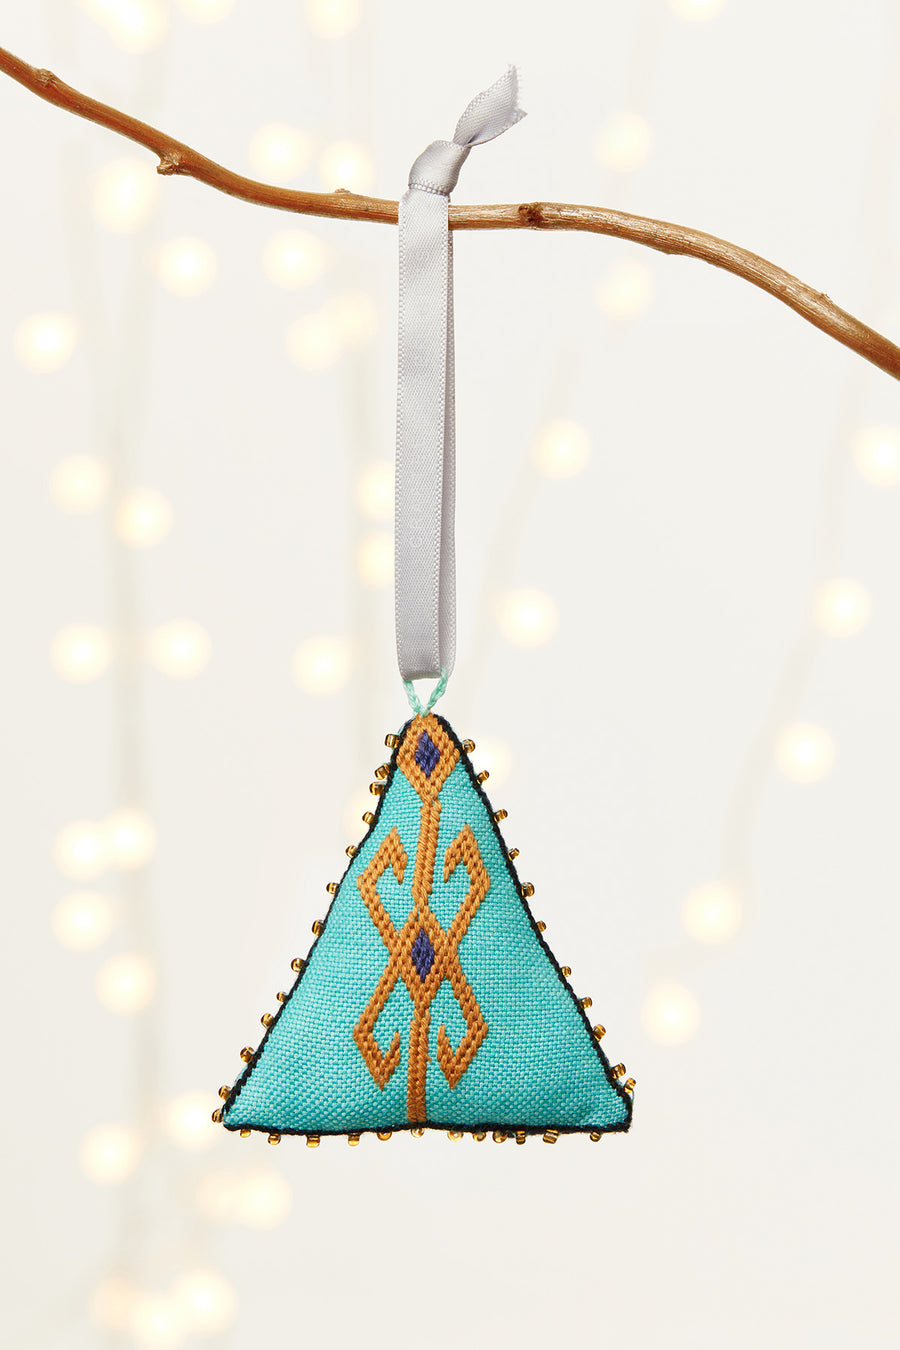 Blue Mountain Ornament